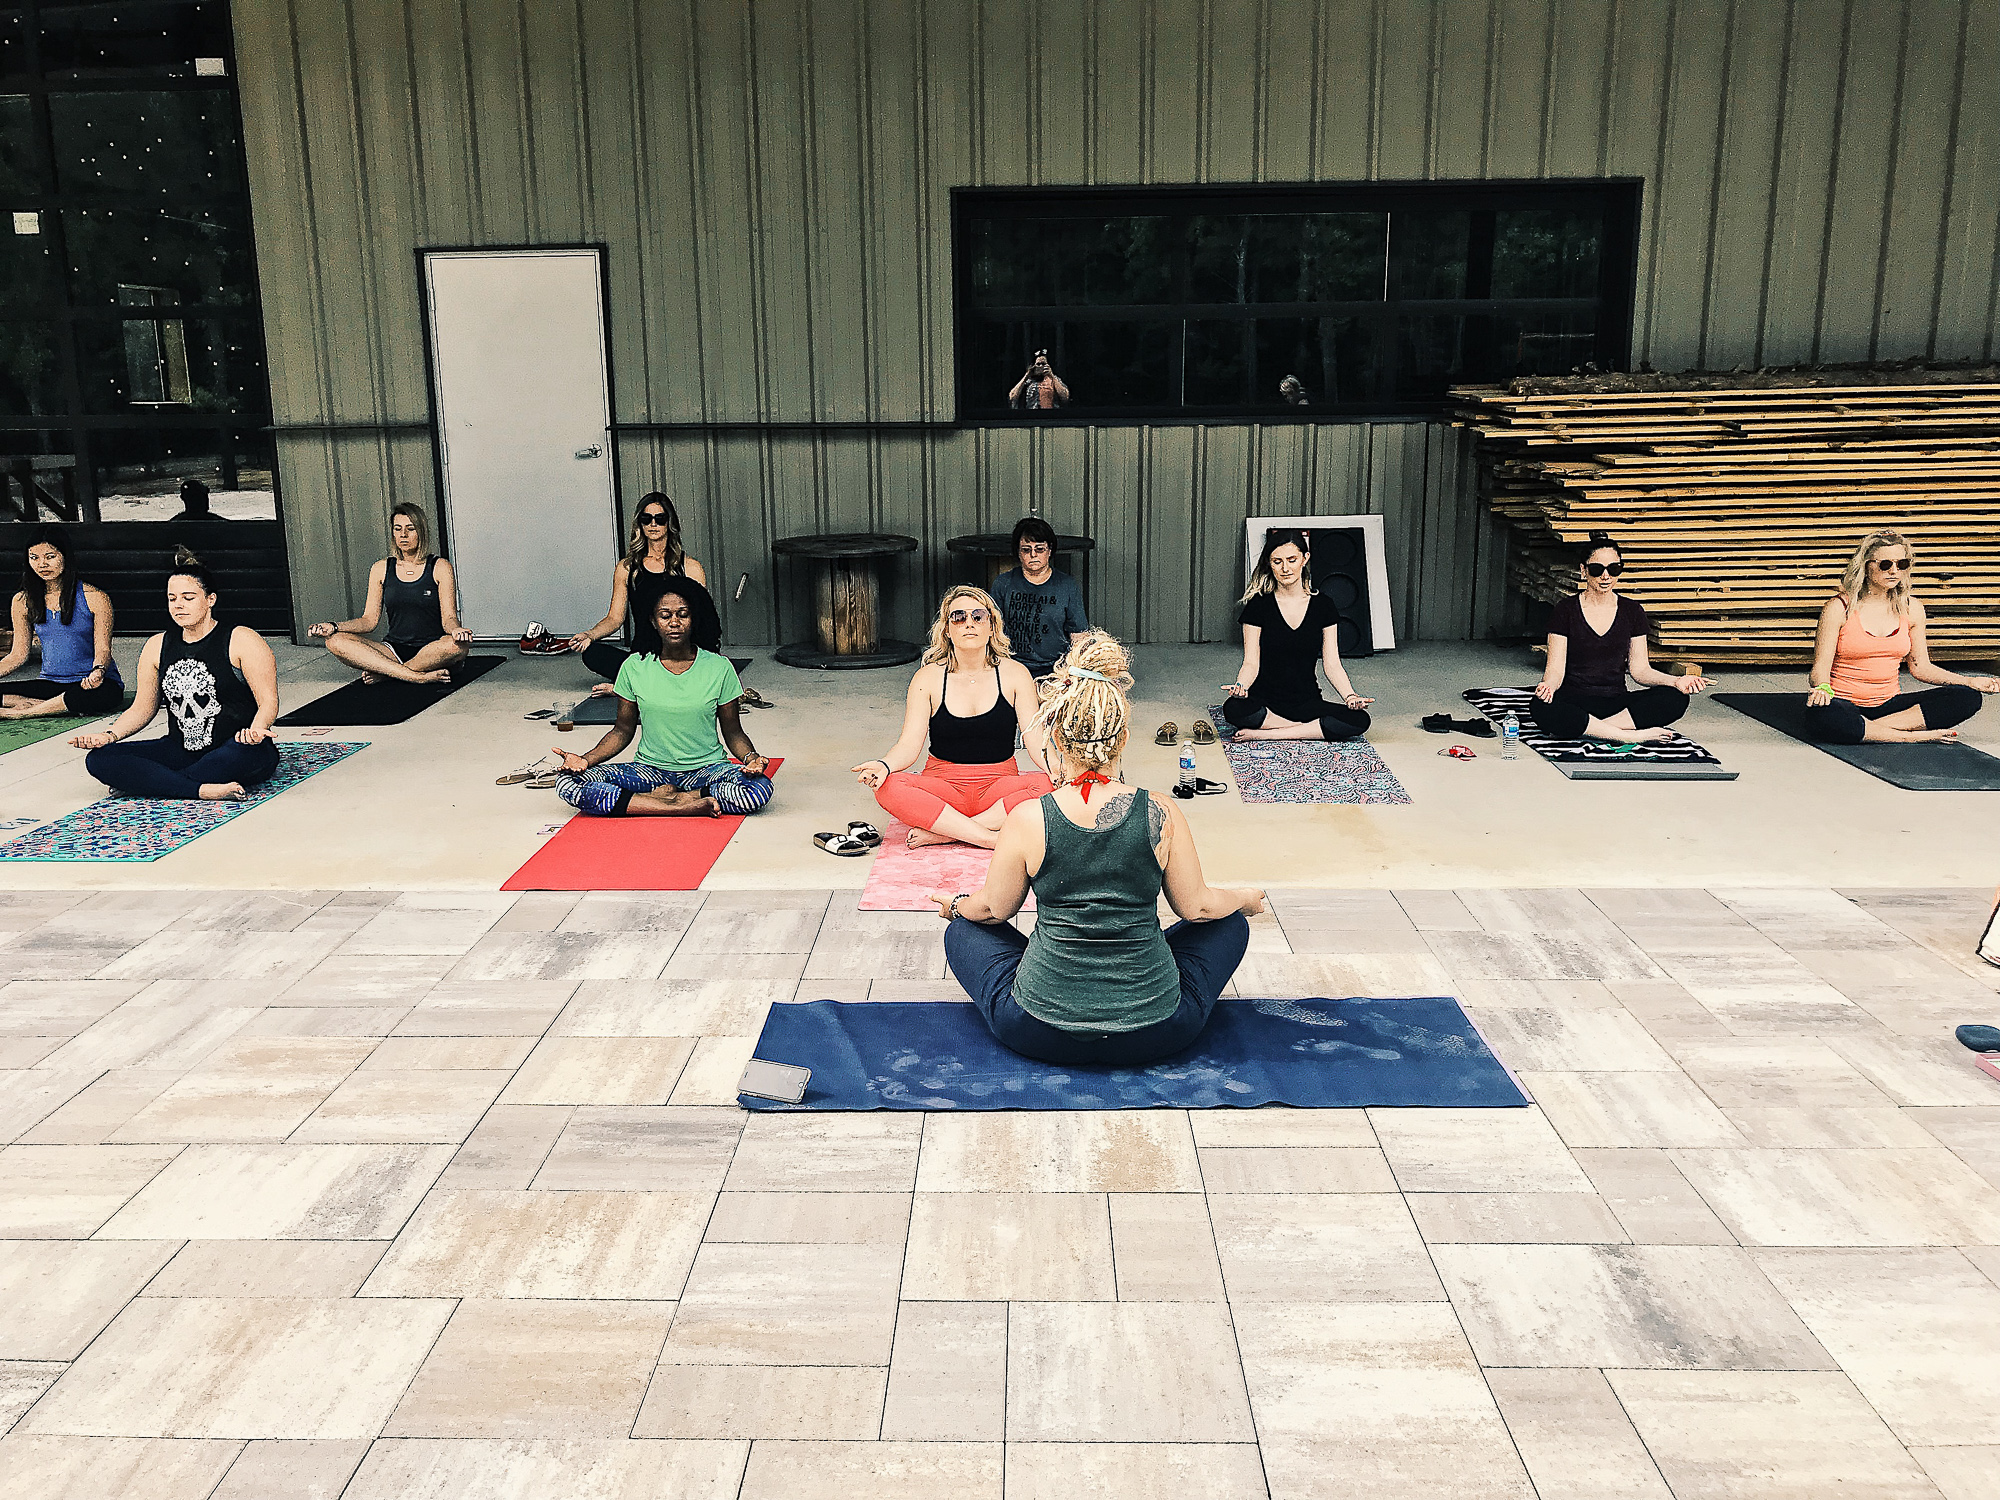 Beer and outdoor yoga at Dirtbag Ales with Hayat Yoga Shala | Fun things to do in Fayetteville North Carolina. Popular NC blogger Jessica Linn exploring historic downtown Fayetteville North Carolina.